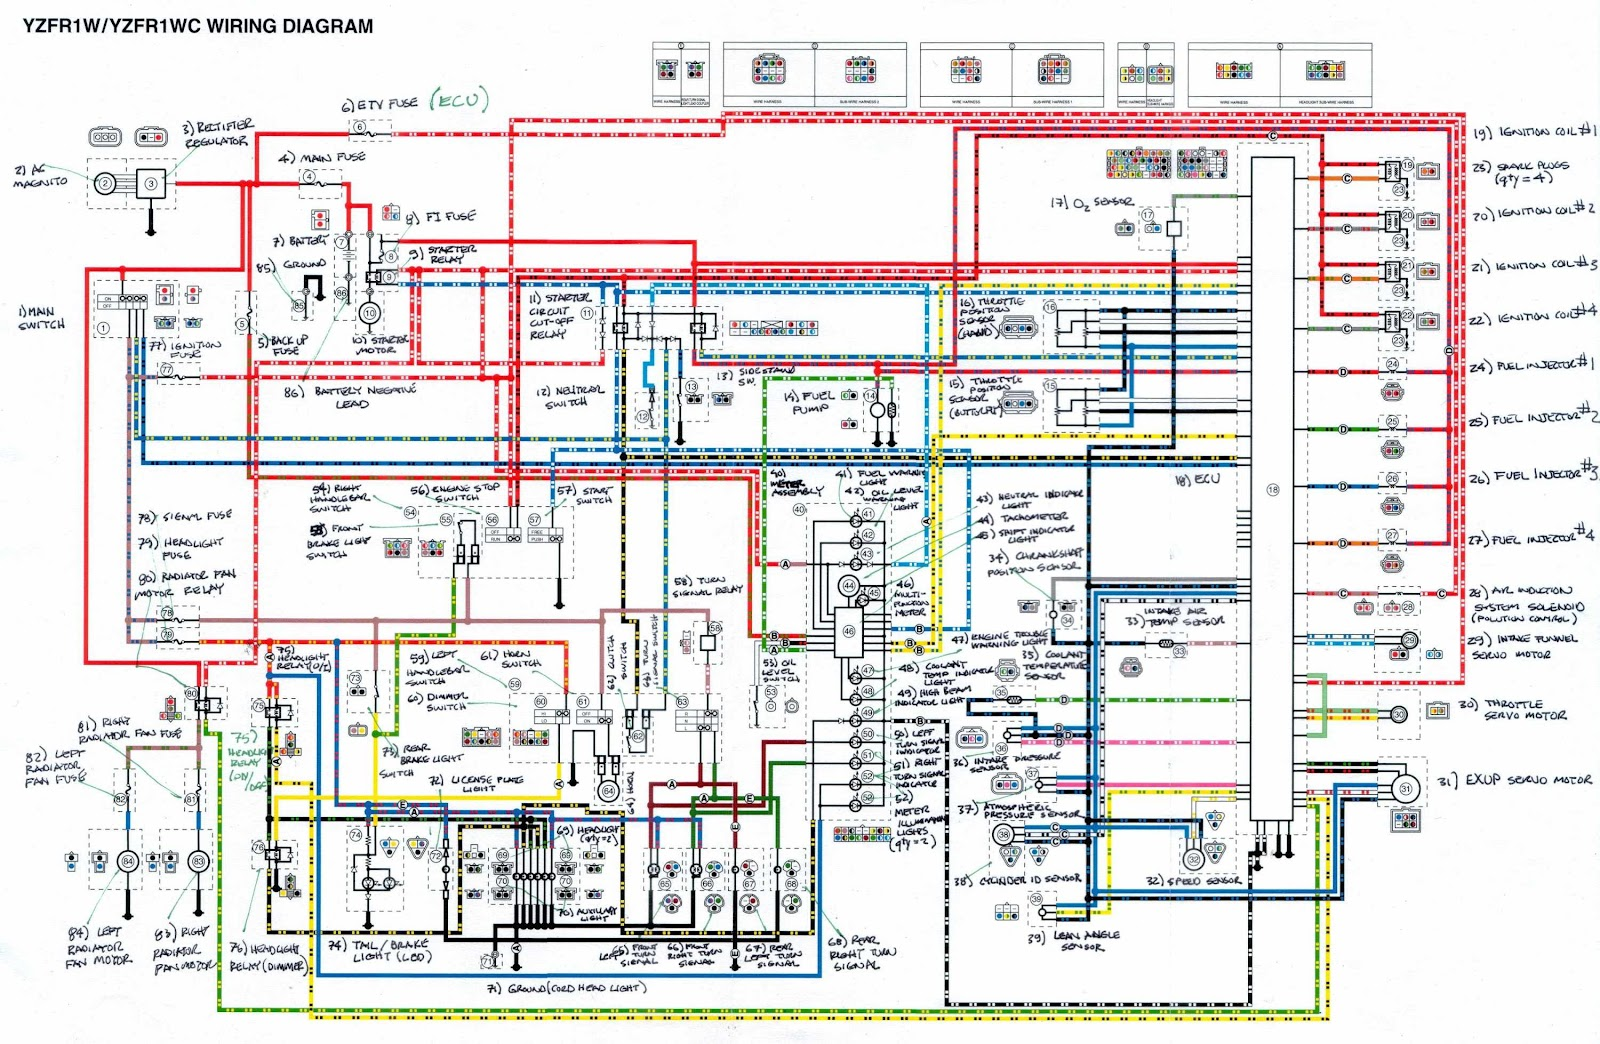 Yamaha+YZF R1+Motorcycle+Wiring+Diagram yamaha blaster wiring diagram the wiring diagram readingrat net 2000 yamaha r1 wiring diagram at suagrazia.org